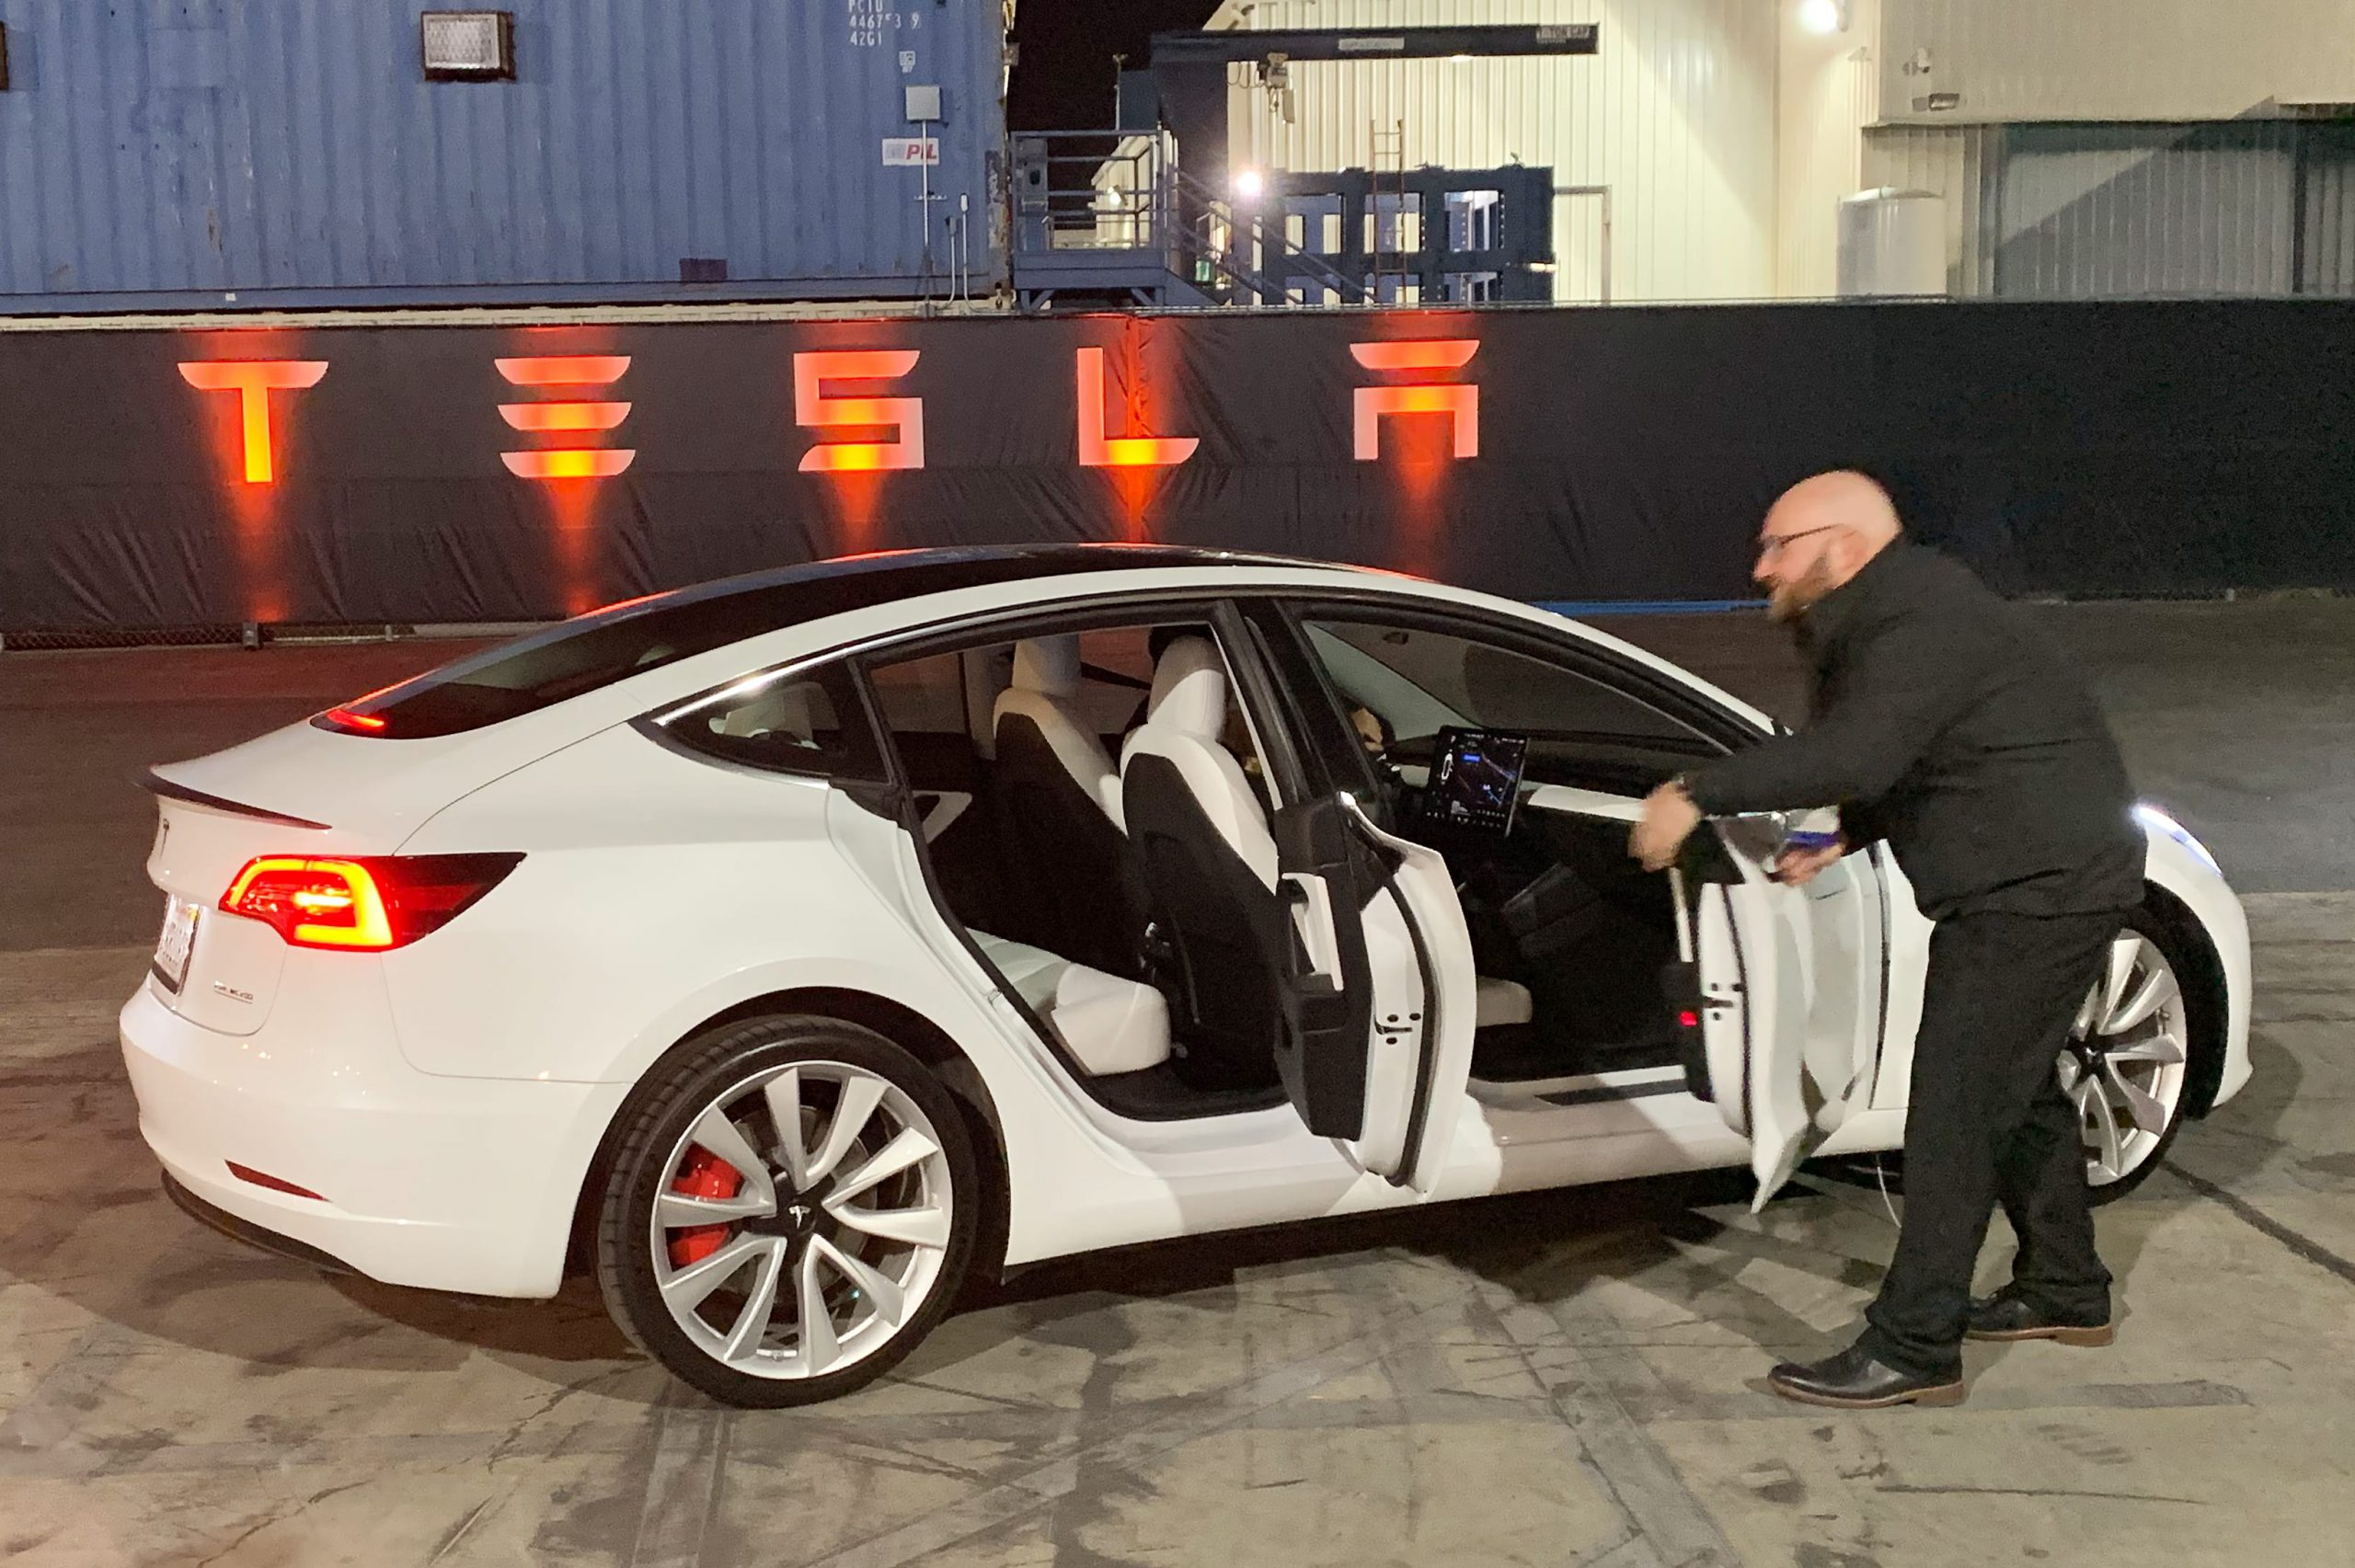 Here's what every major analyst had to say about Tesla's big earnings beat